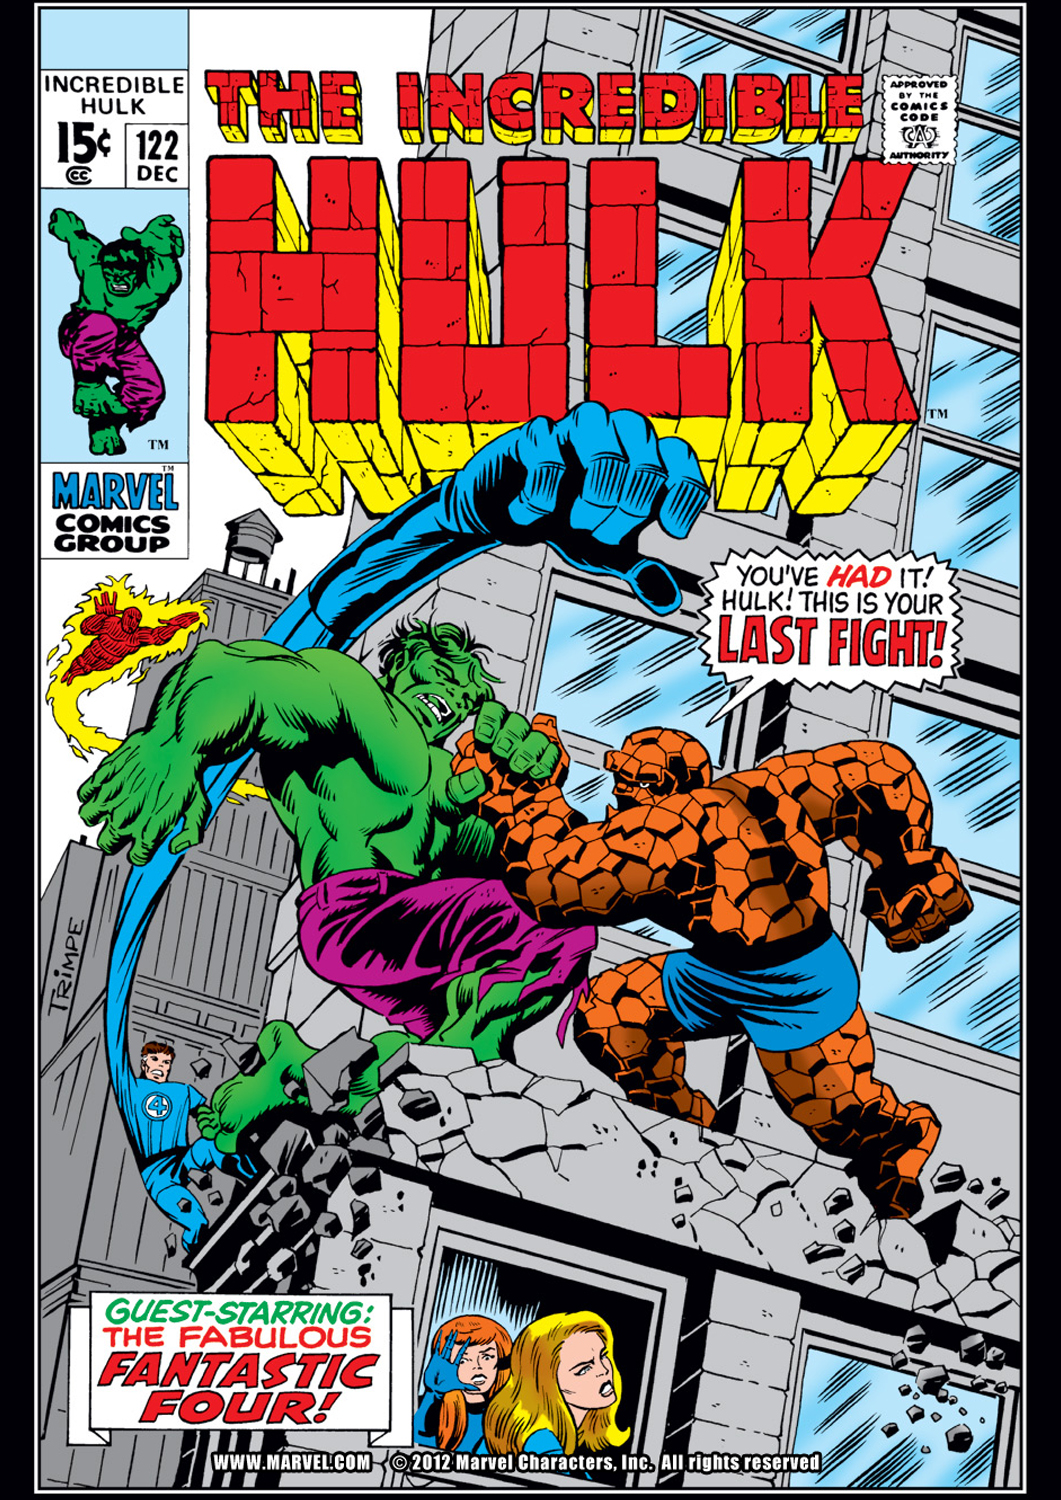 Incredible Hulk (1962) #122